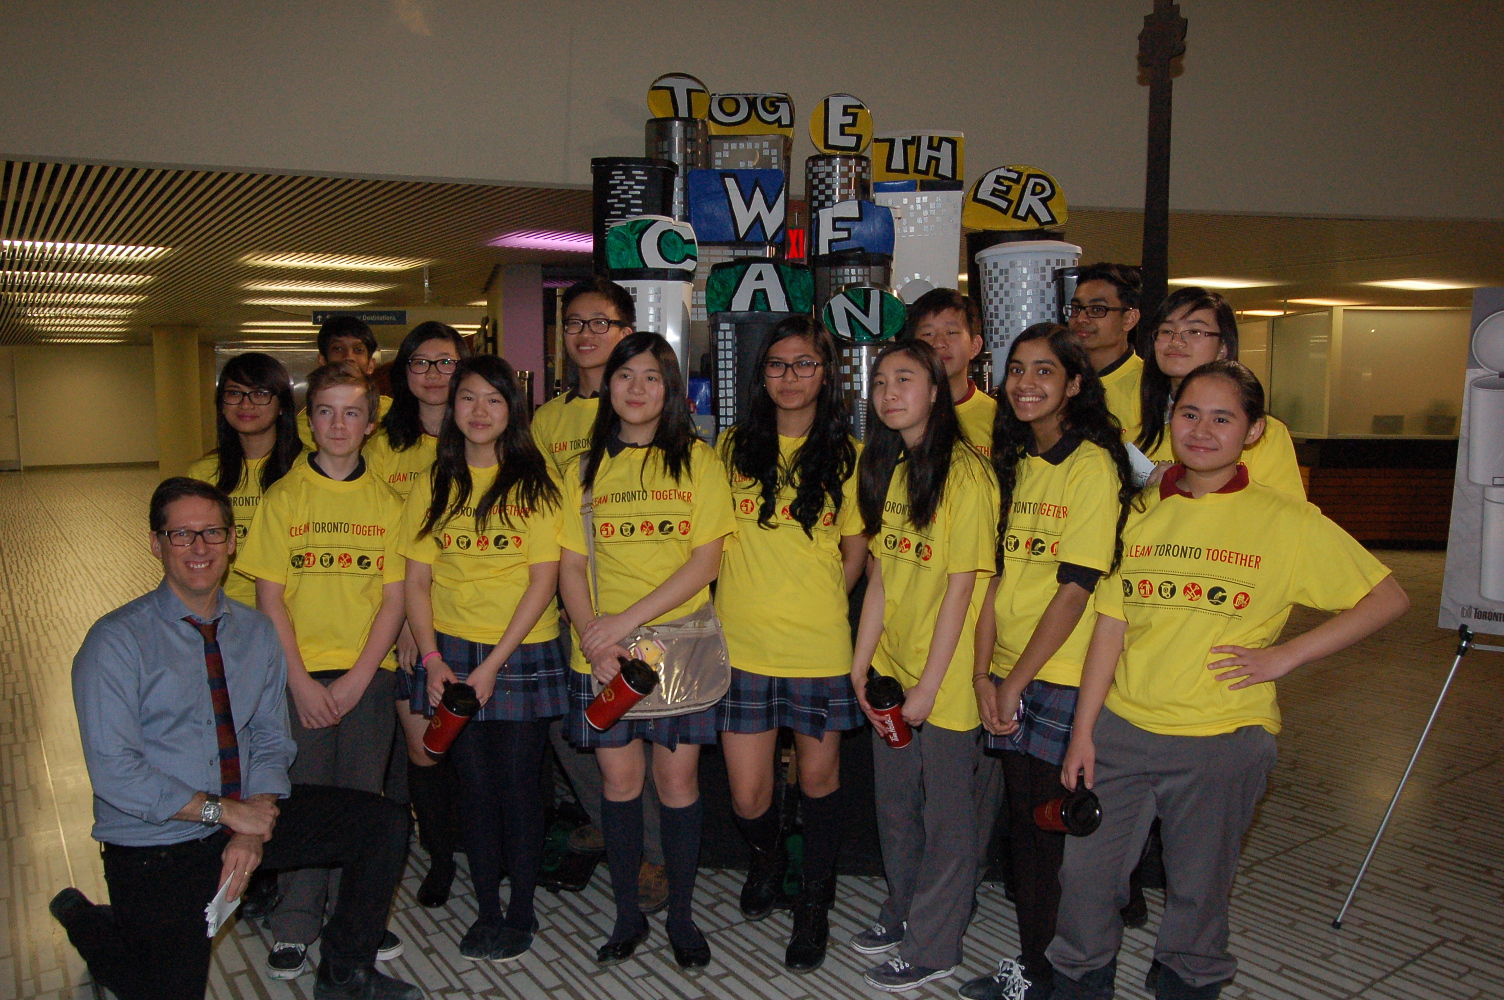 MaryWard YellowShirts Cans 01.JPG